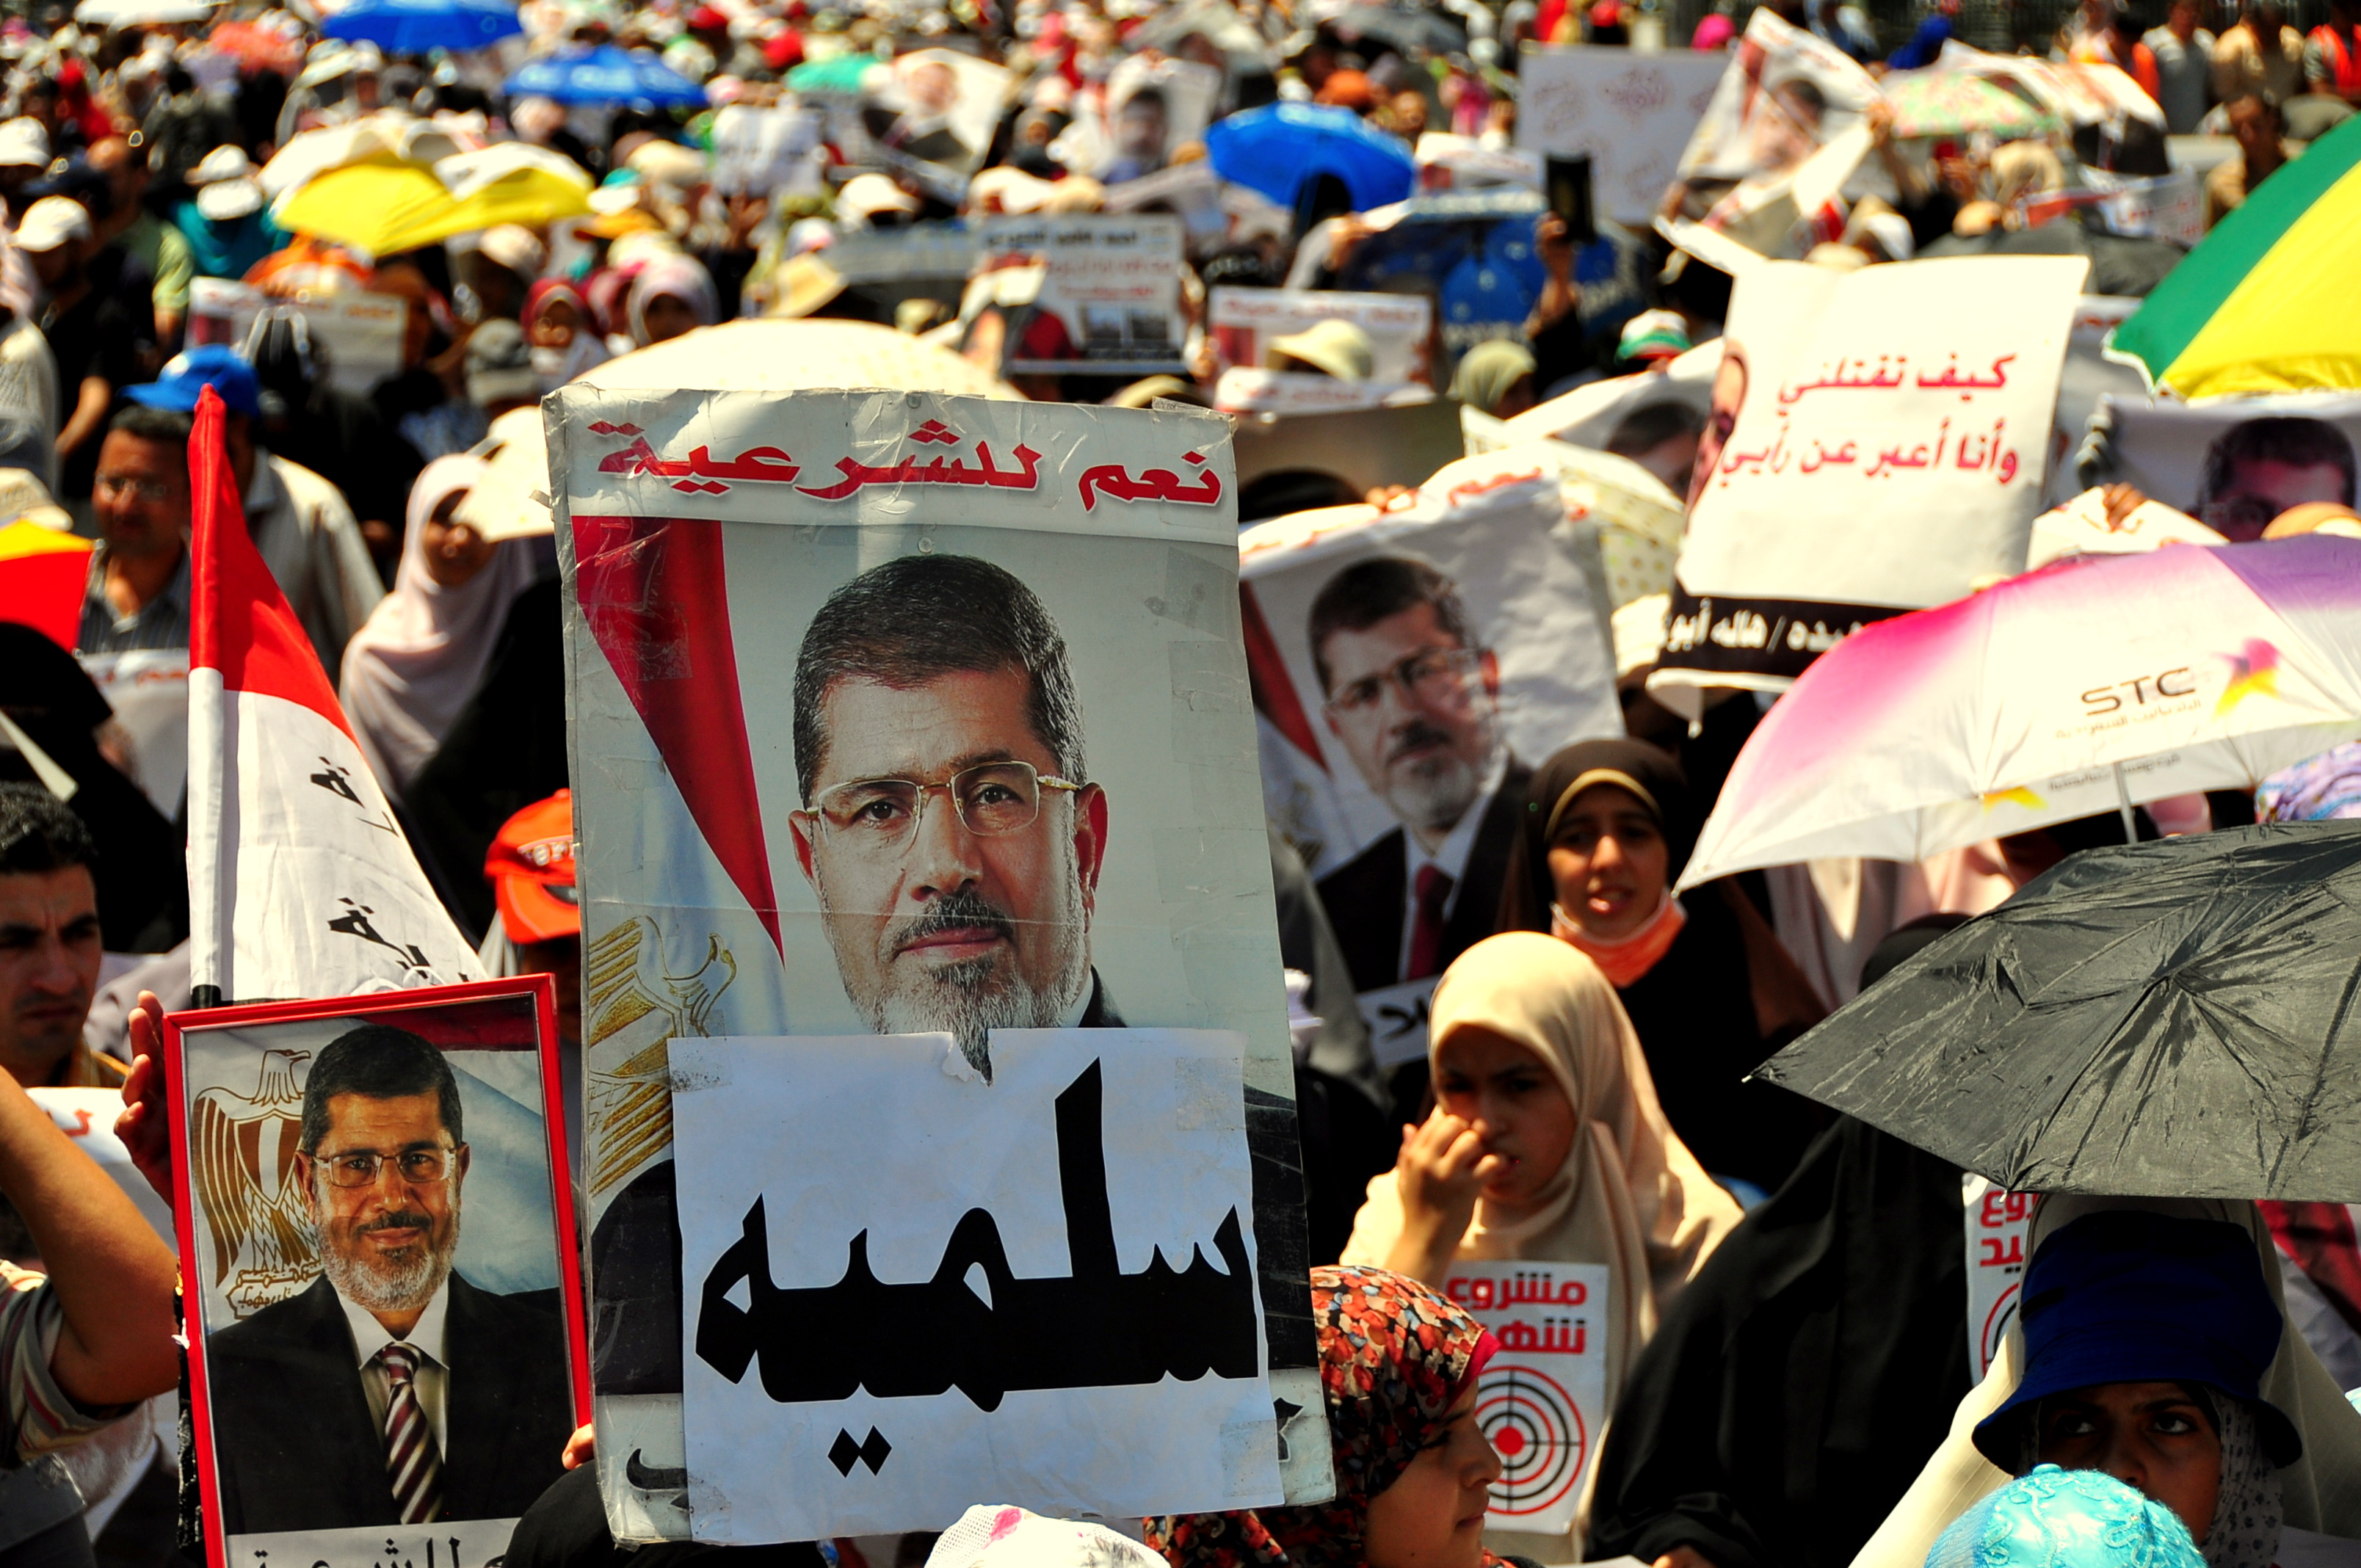 A large crowd of mostly female demonstrators gathered at Al Nour Mosque in Abissaya on Tuesday afternoon in a show of support for ousted president Mohamed Morsi, and to protest last Saturday's attacks on Nasr Road that left dozens of Morsi supporters dead. Aaron T Rose